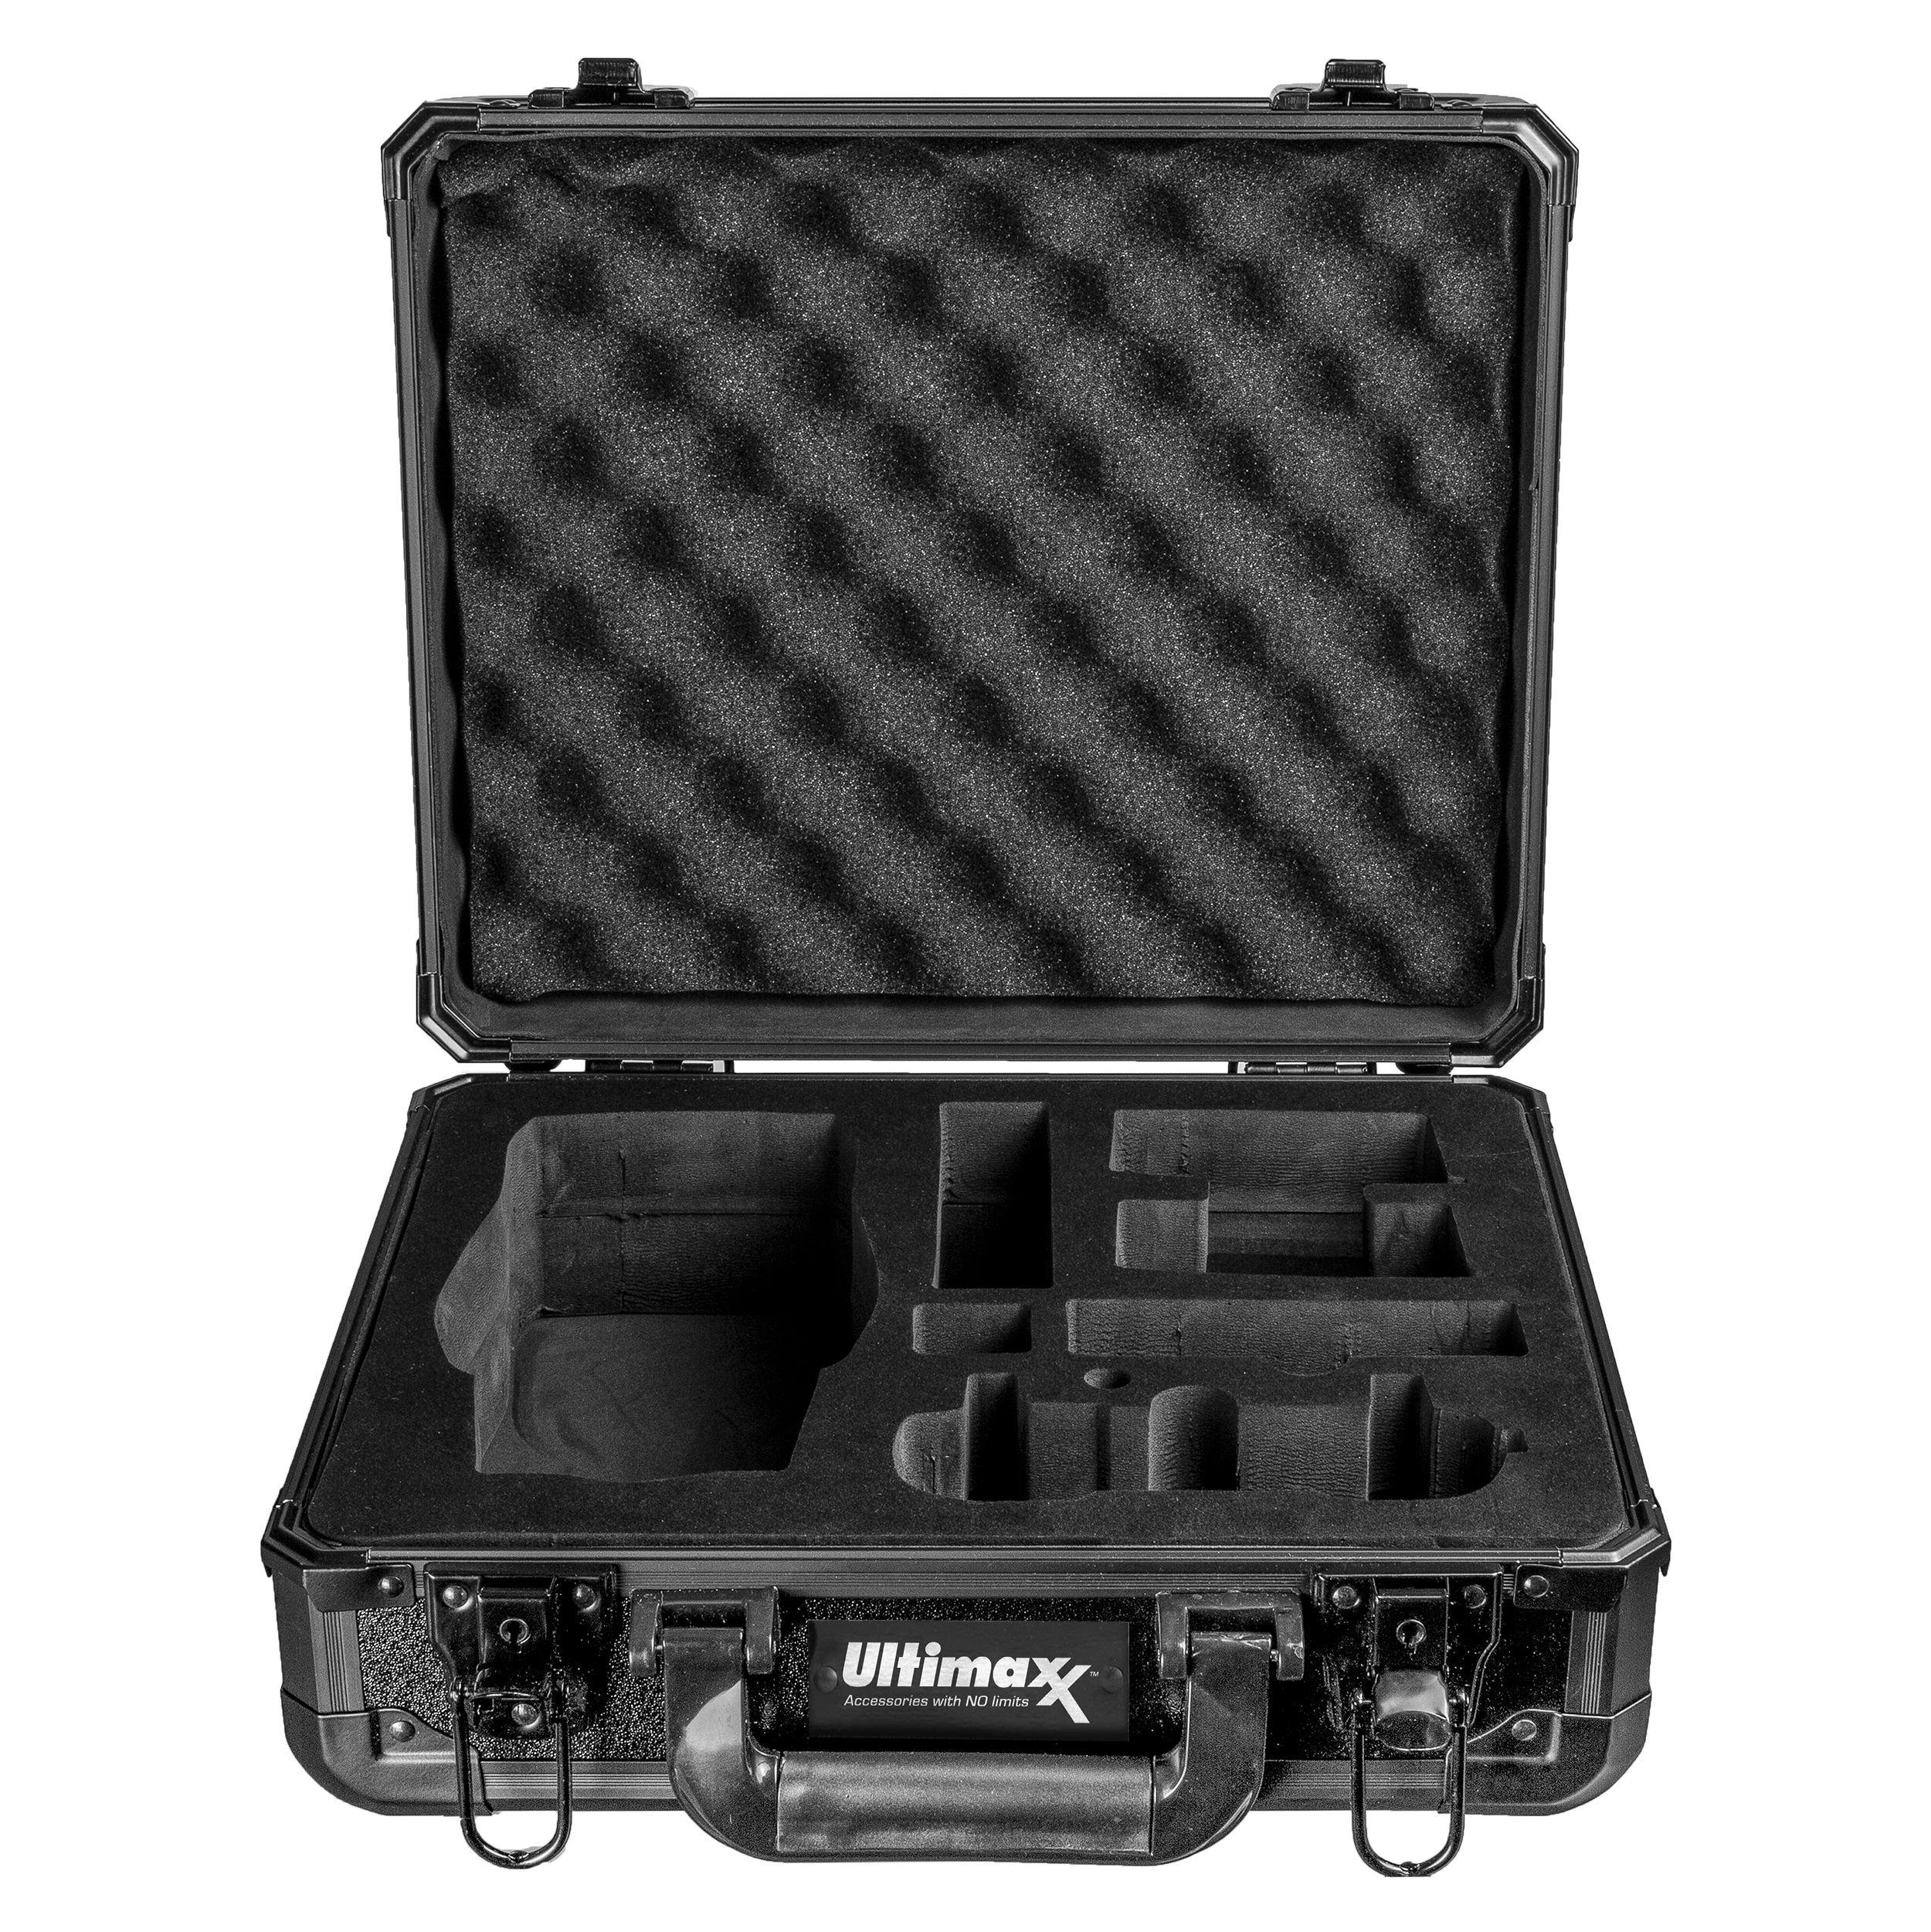 Ultimaxx Aluminum Carry Case f